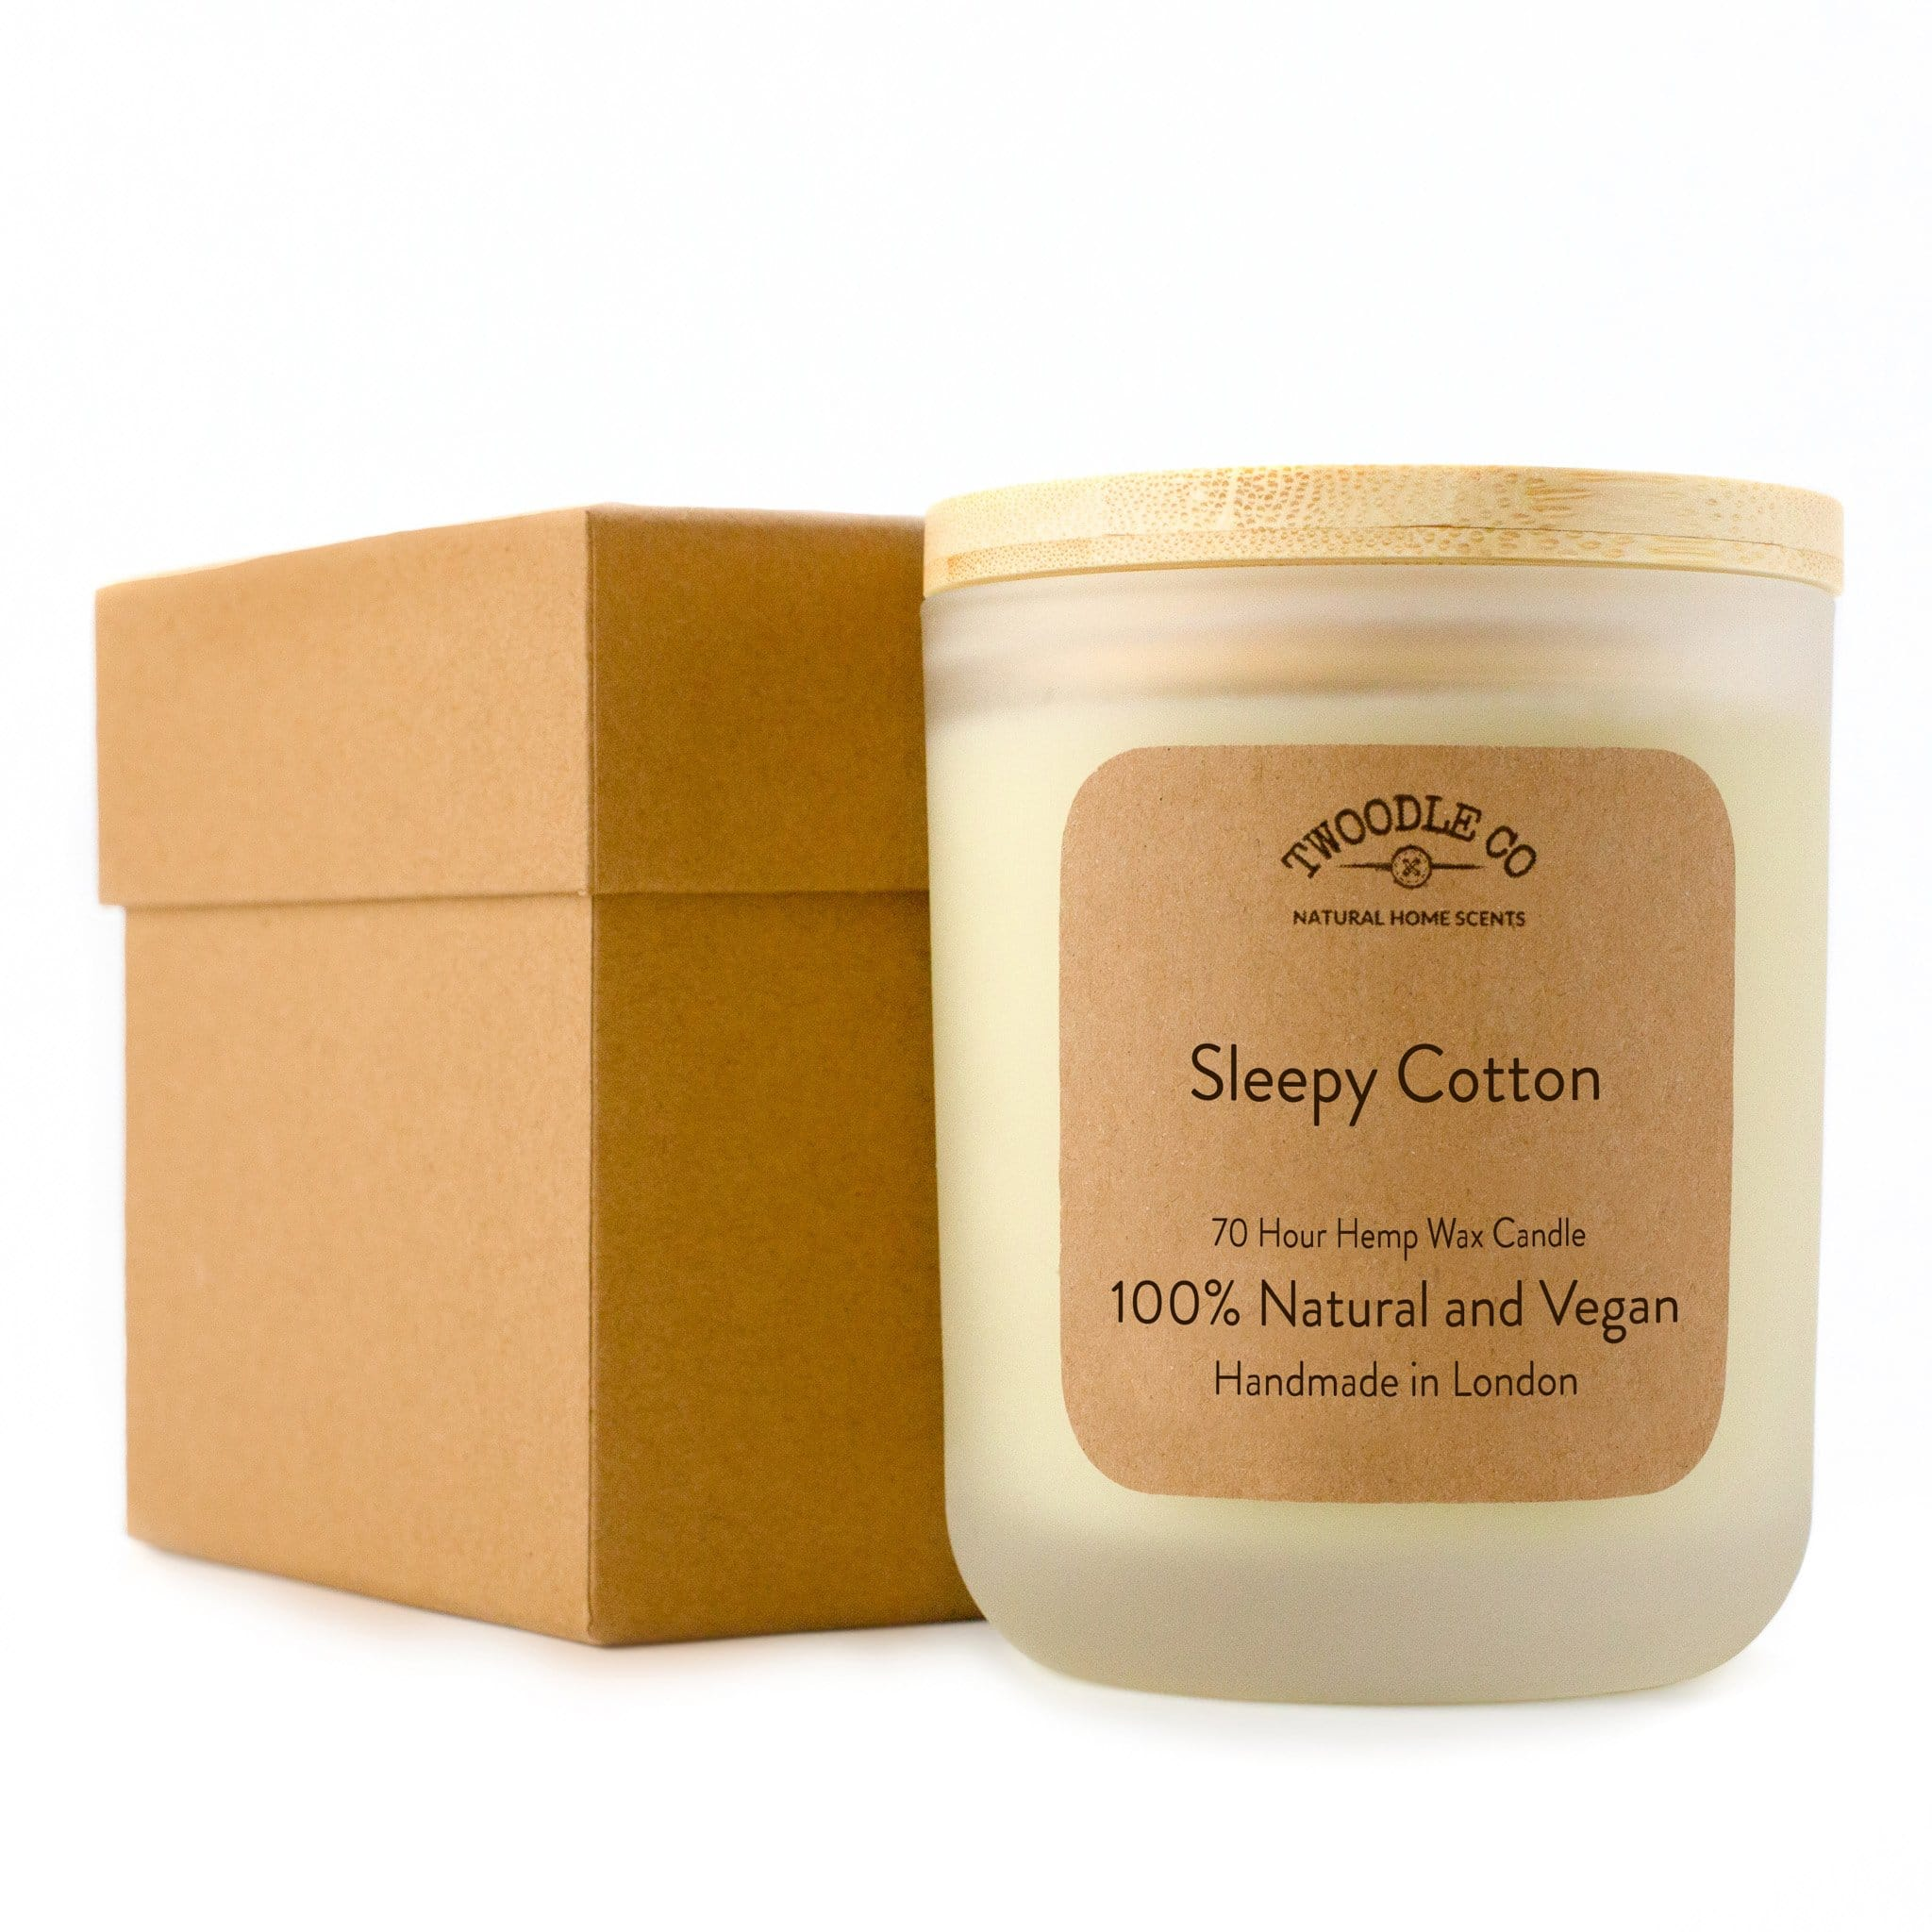 Sleepy Cotton Large Scented Candle 70 Hour